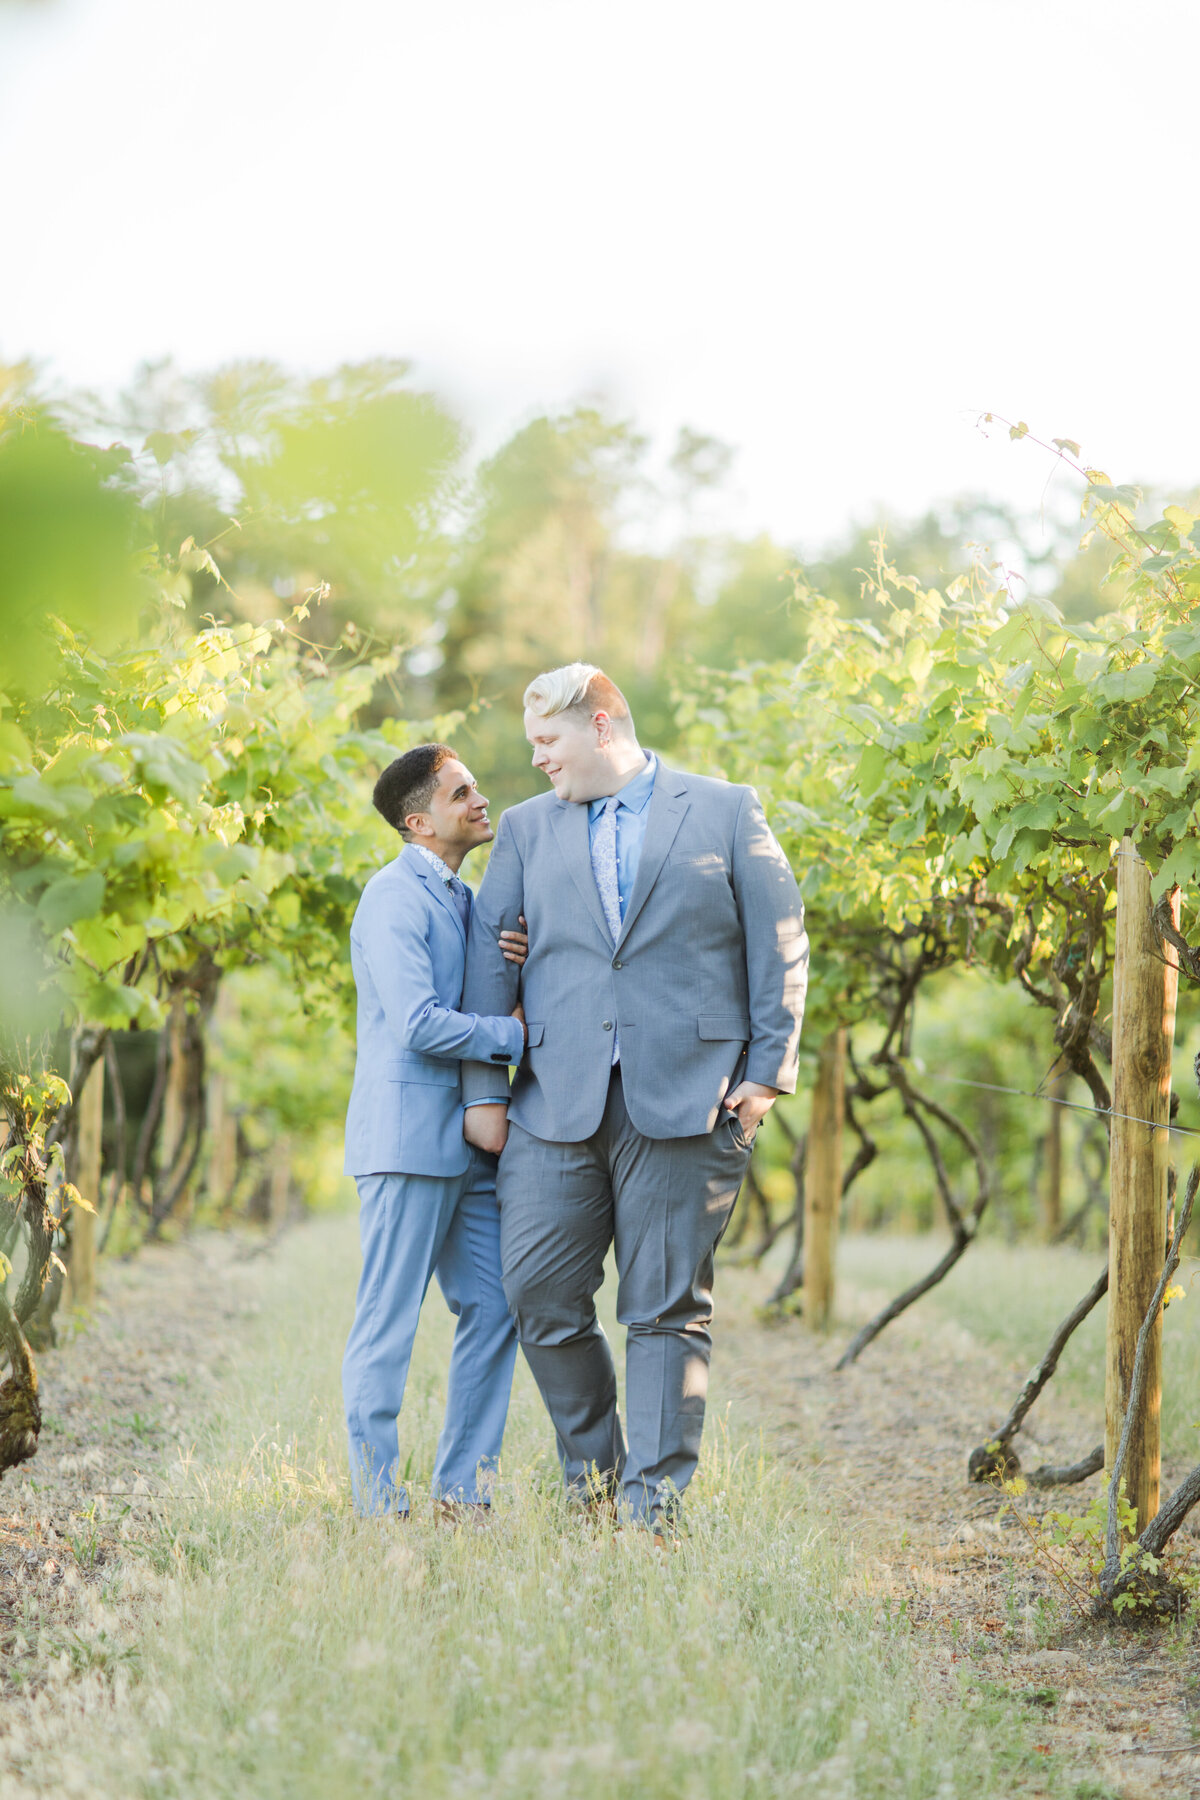 LGBTQ_Engagement_Session_Renault_Winery_Galloway_New_Jersey-36